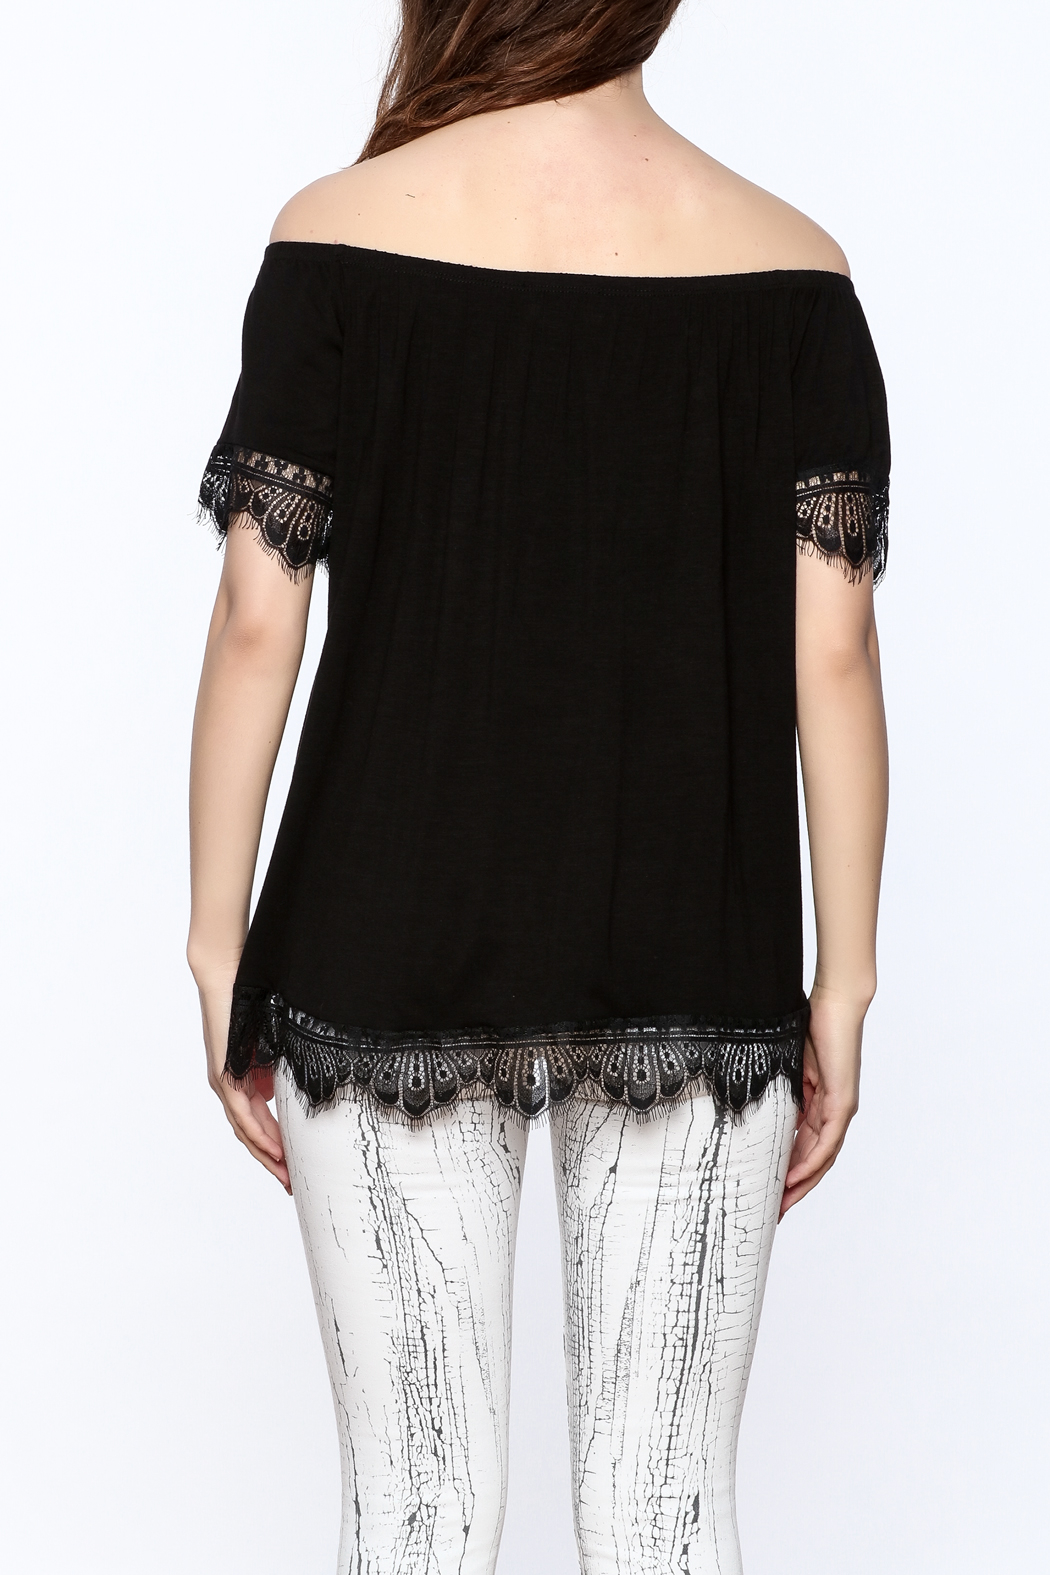 Ella Mara Black Off Shoulder Blouse - Back Cropped Image